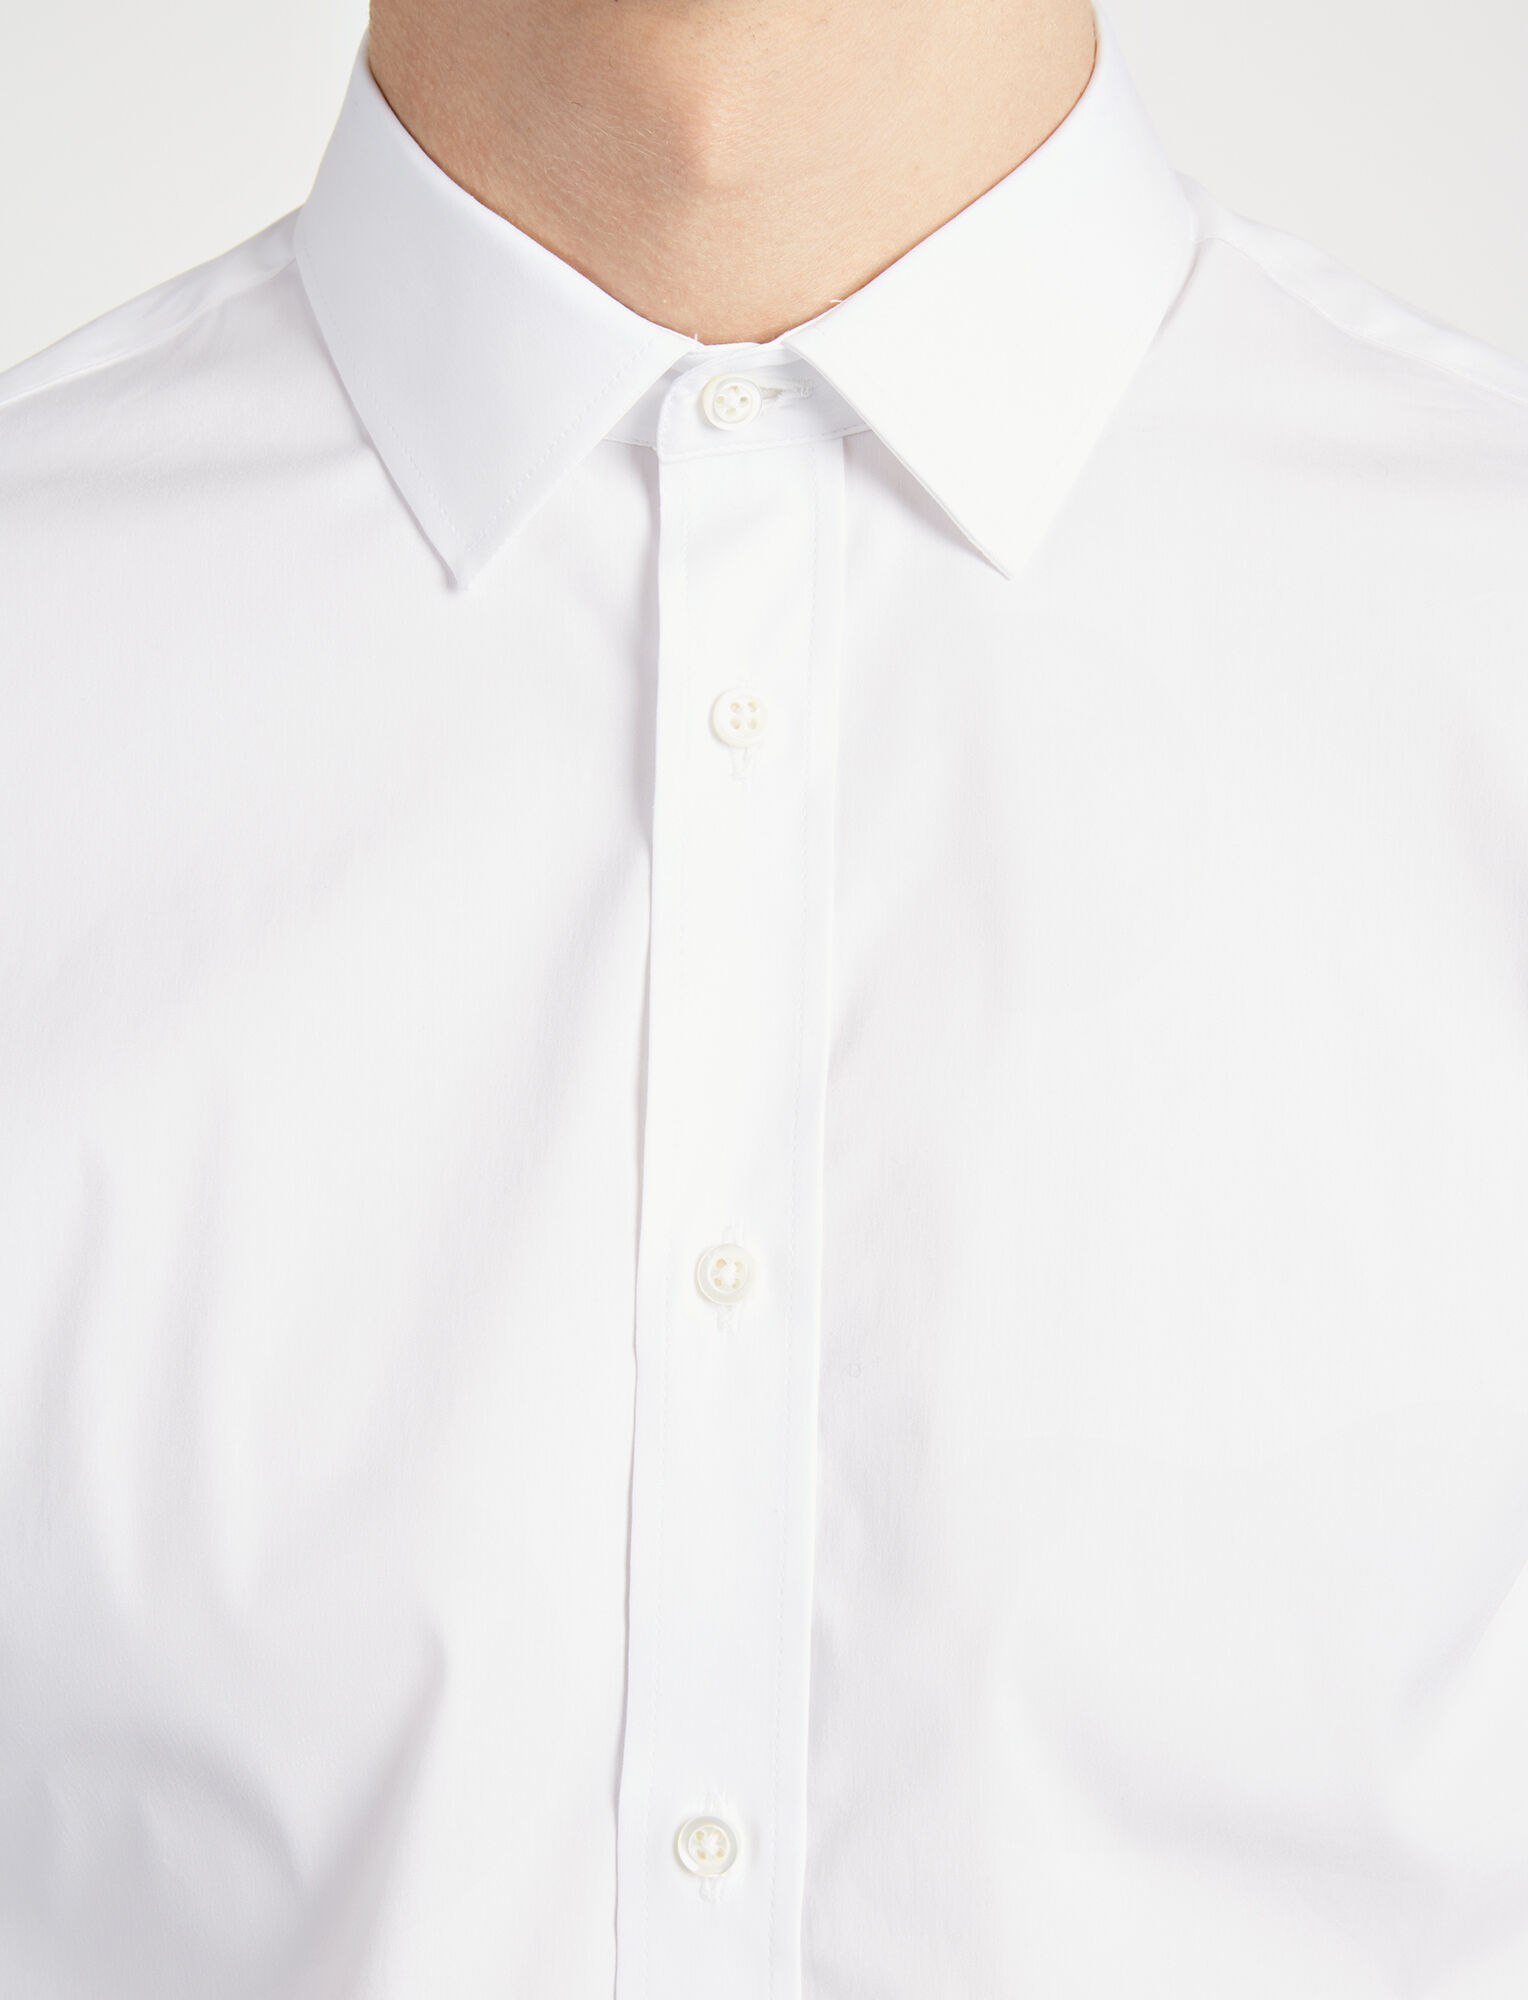 Joseph, Poplin Stretch Jim Shirt, in WHITE